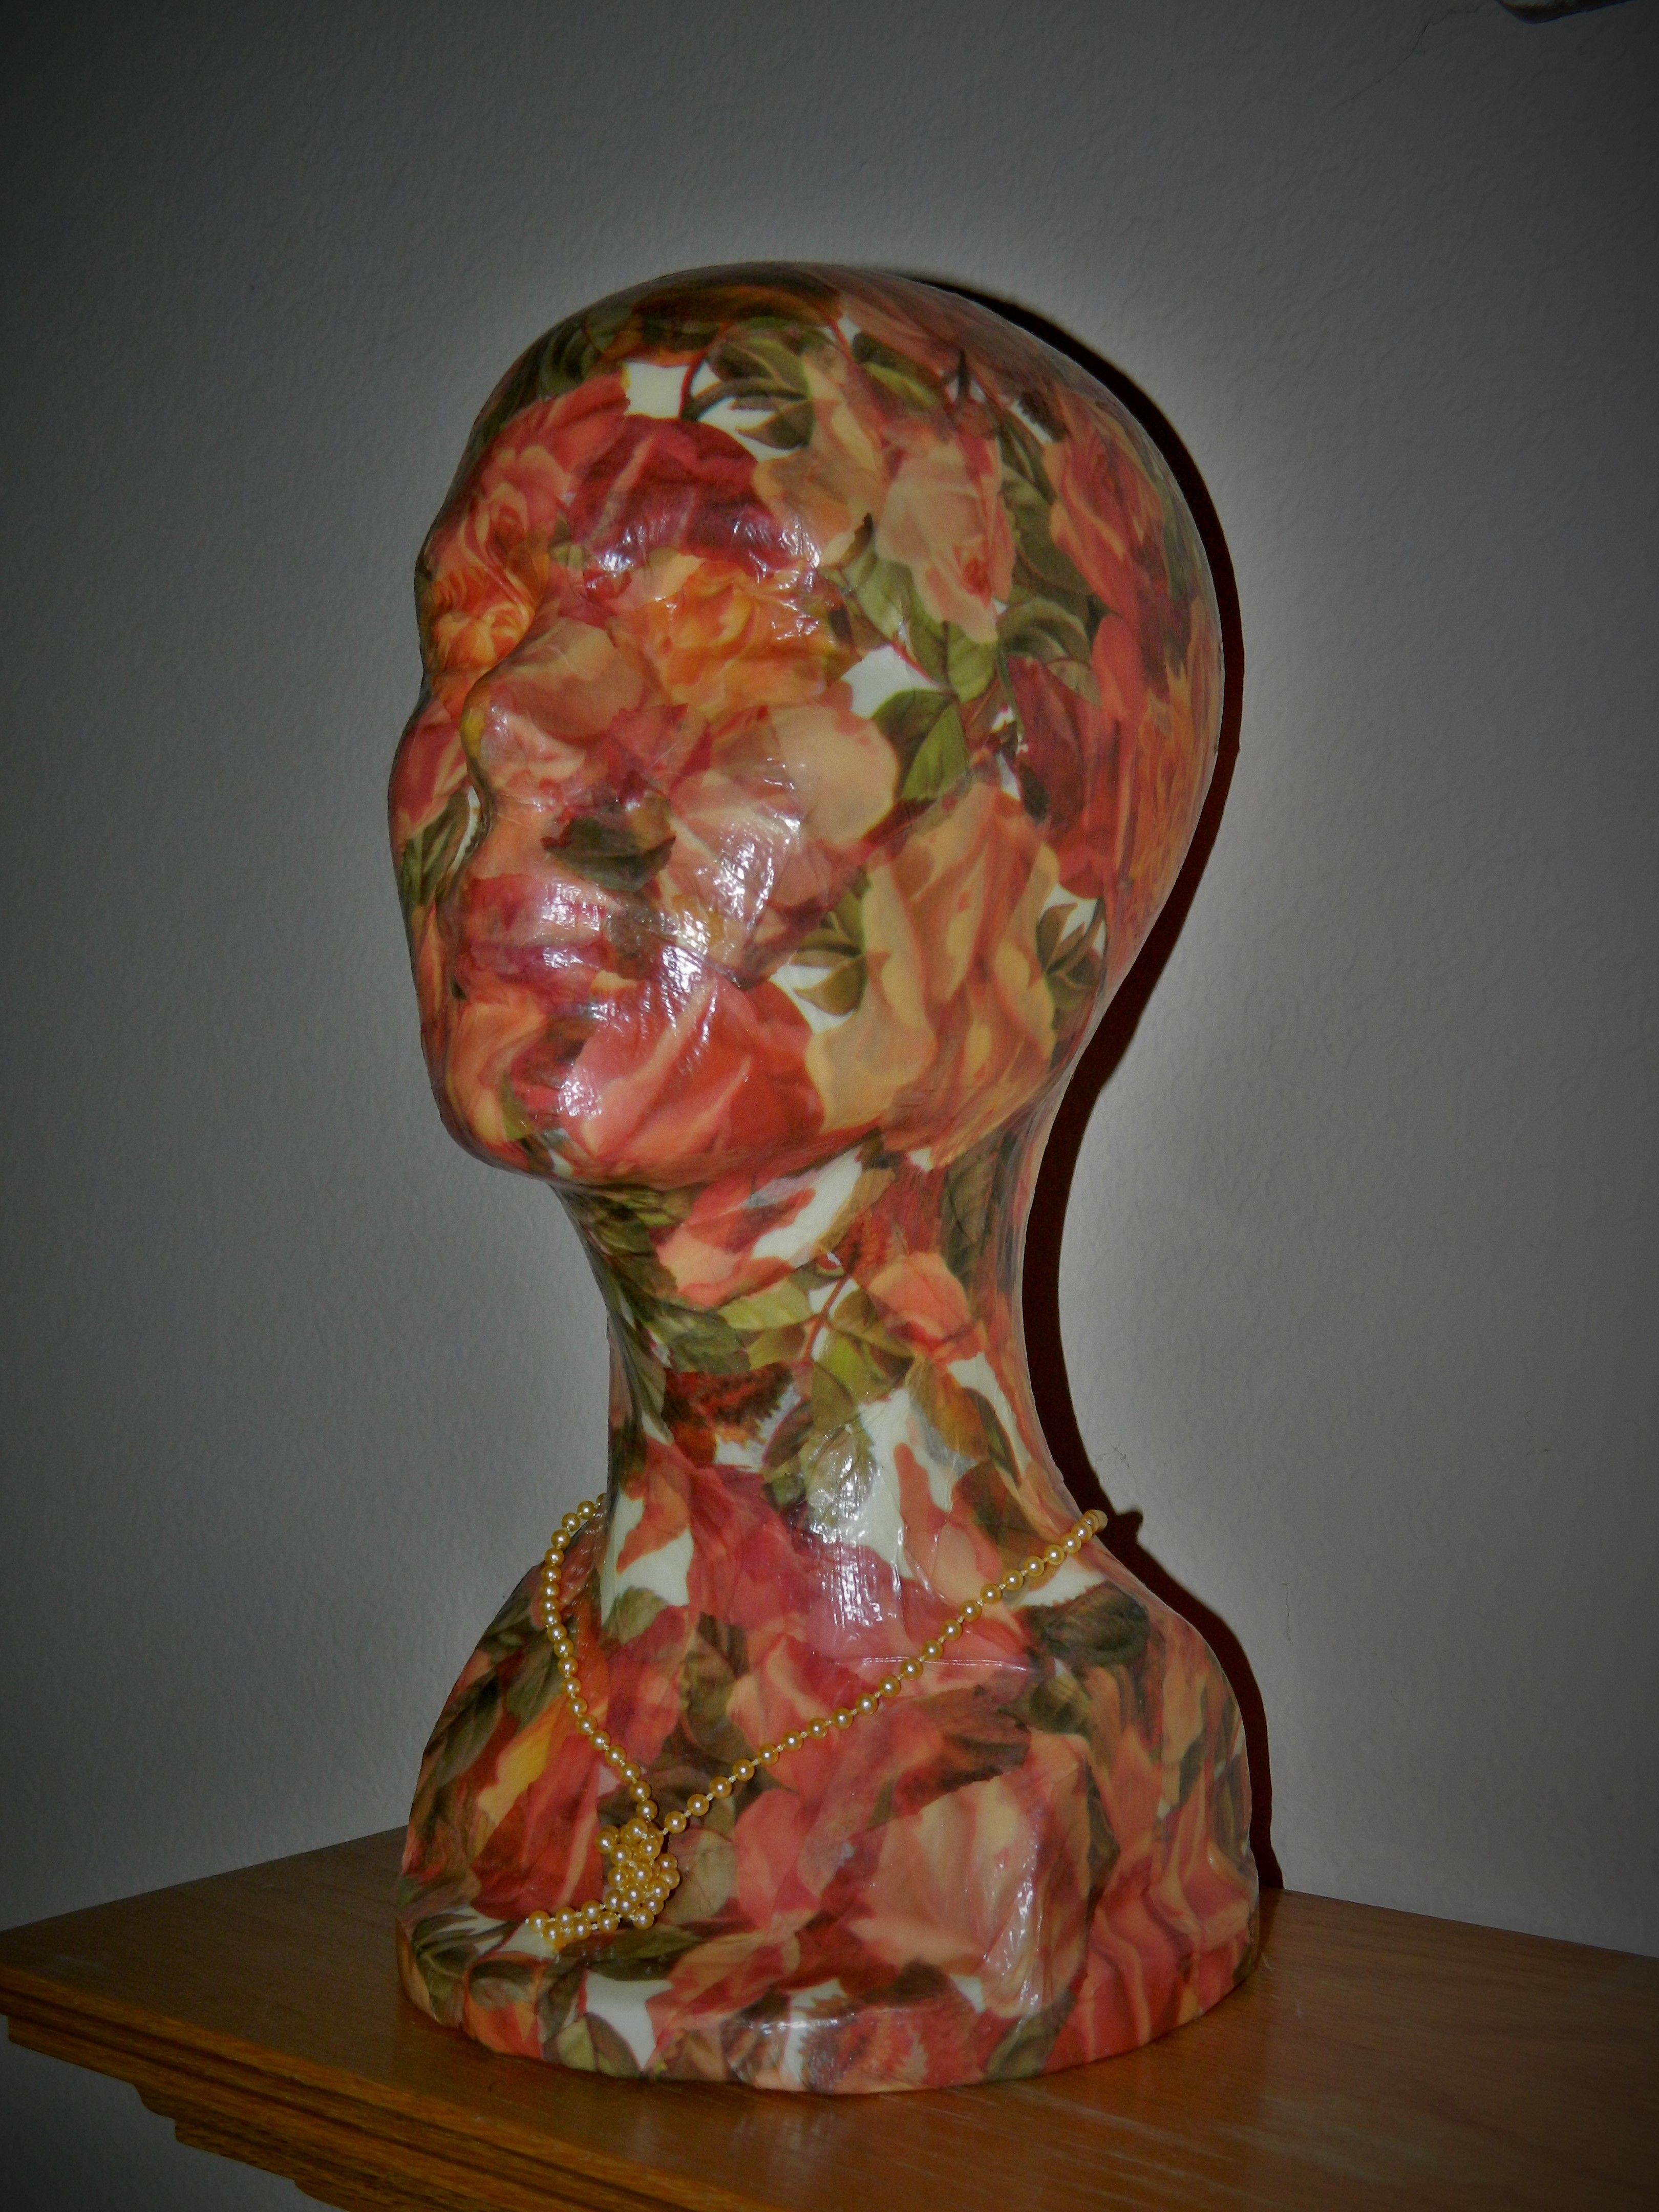 A Styrofoam Head I Decoupaged With Tissue Paper